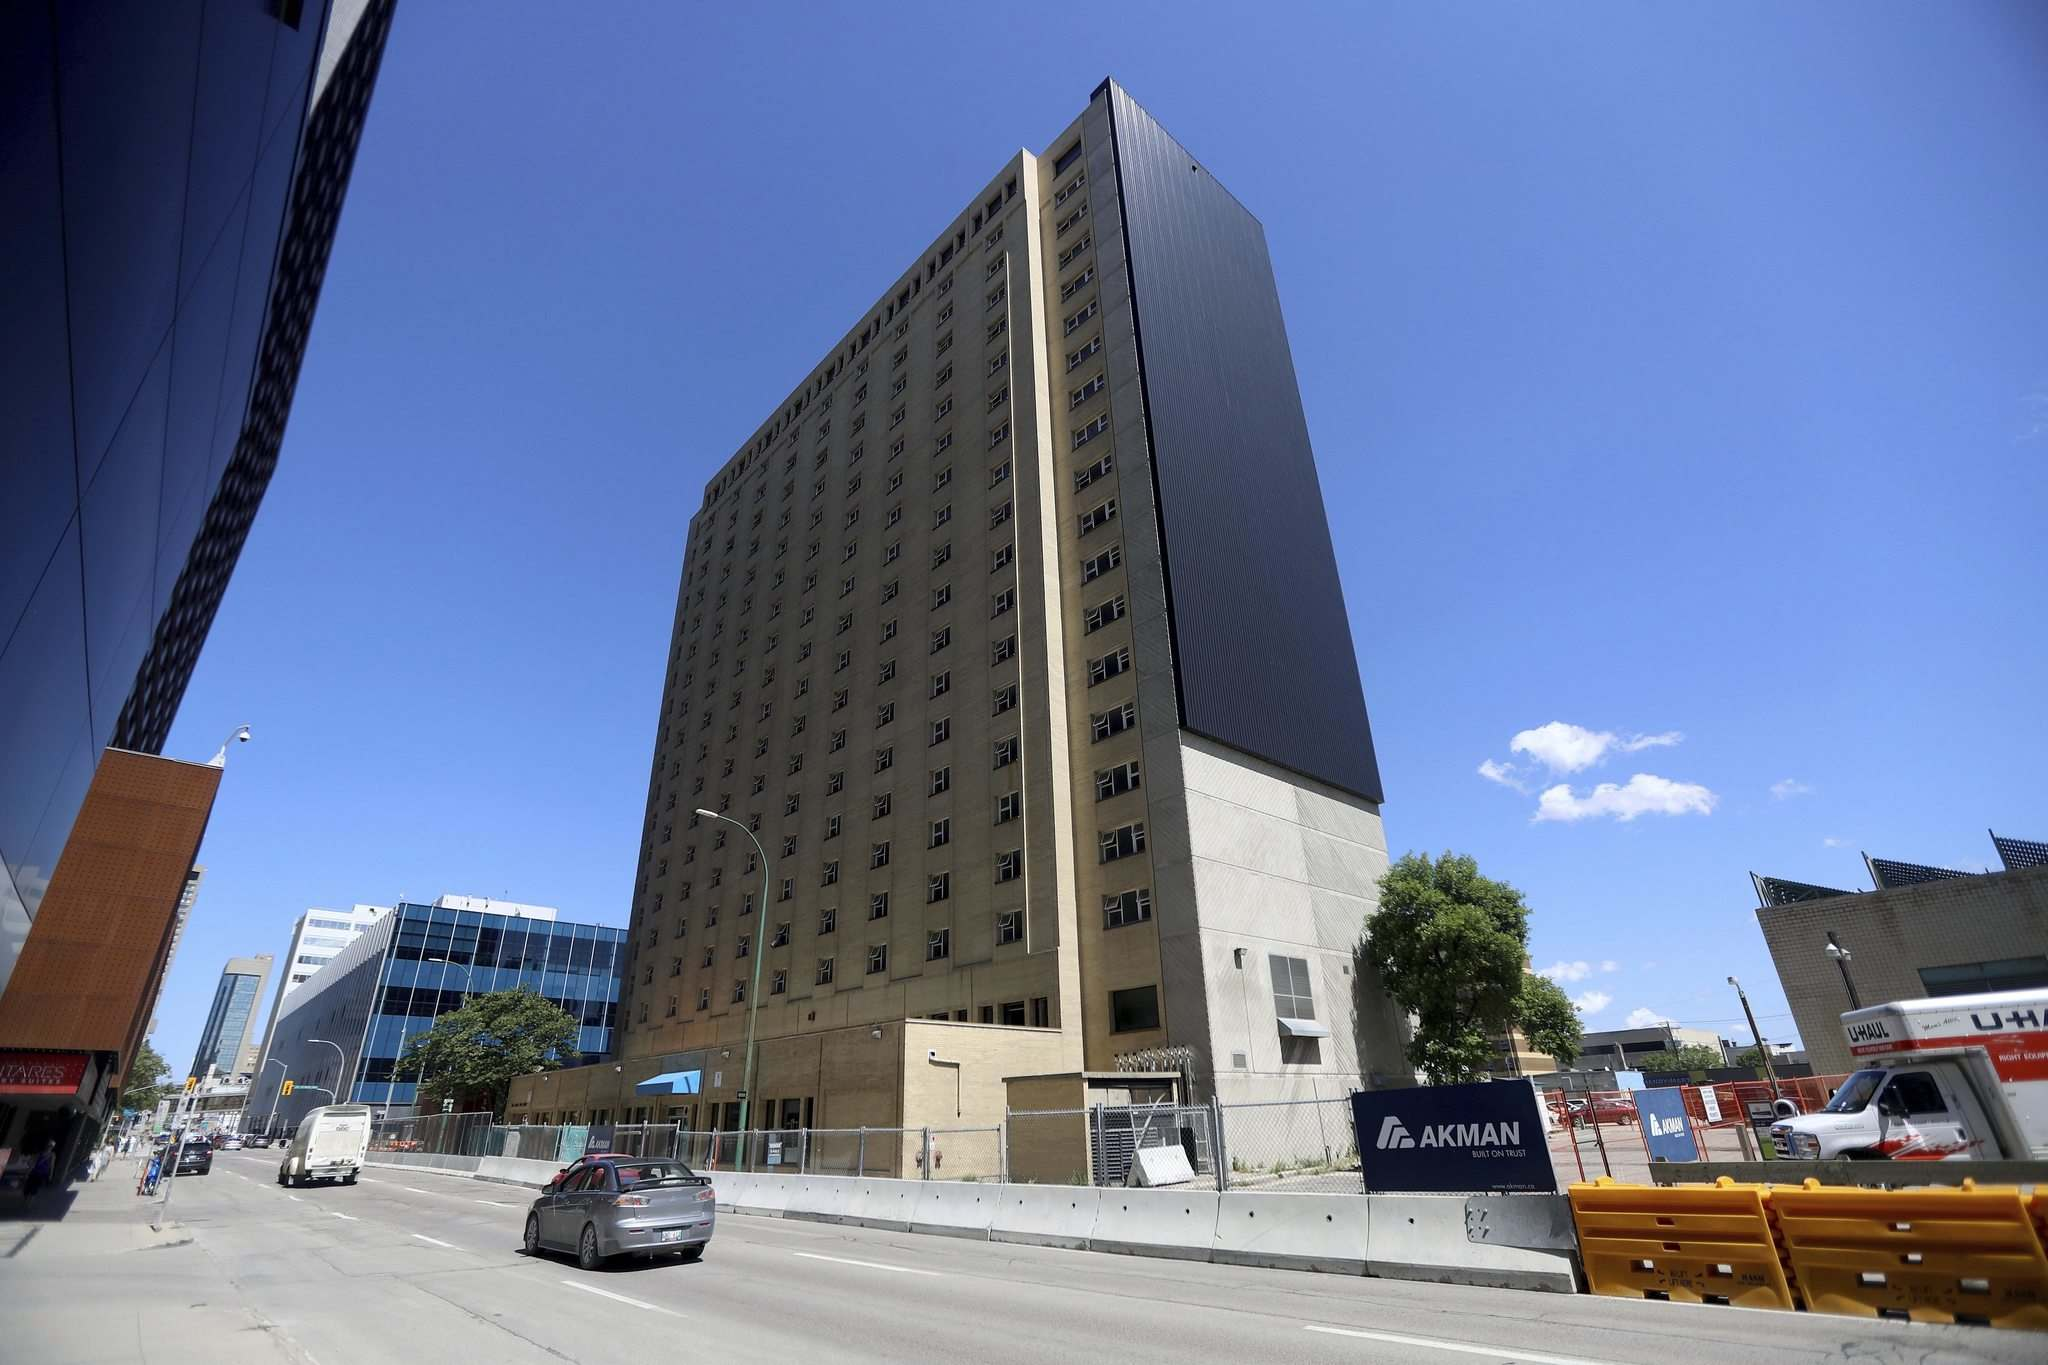 TREVOR HAGAN / WINNIPEG FREE PRESS</p><p>The former Manitoba Housing tower at 185 Smith St. is expected to have 250 units when renovations are complete in 2021.</p></p>